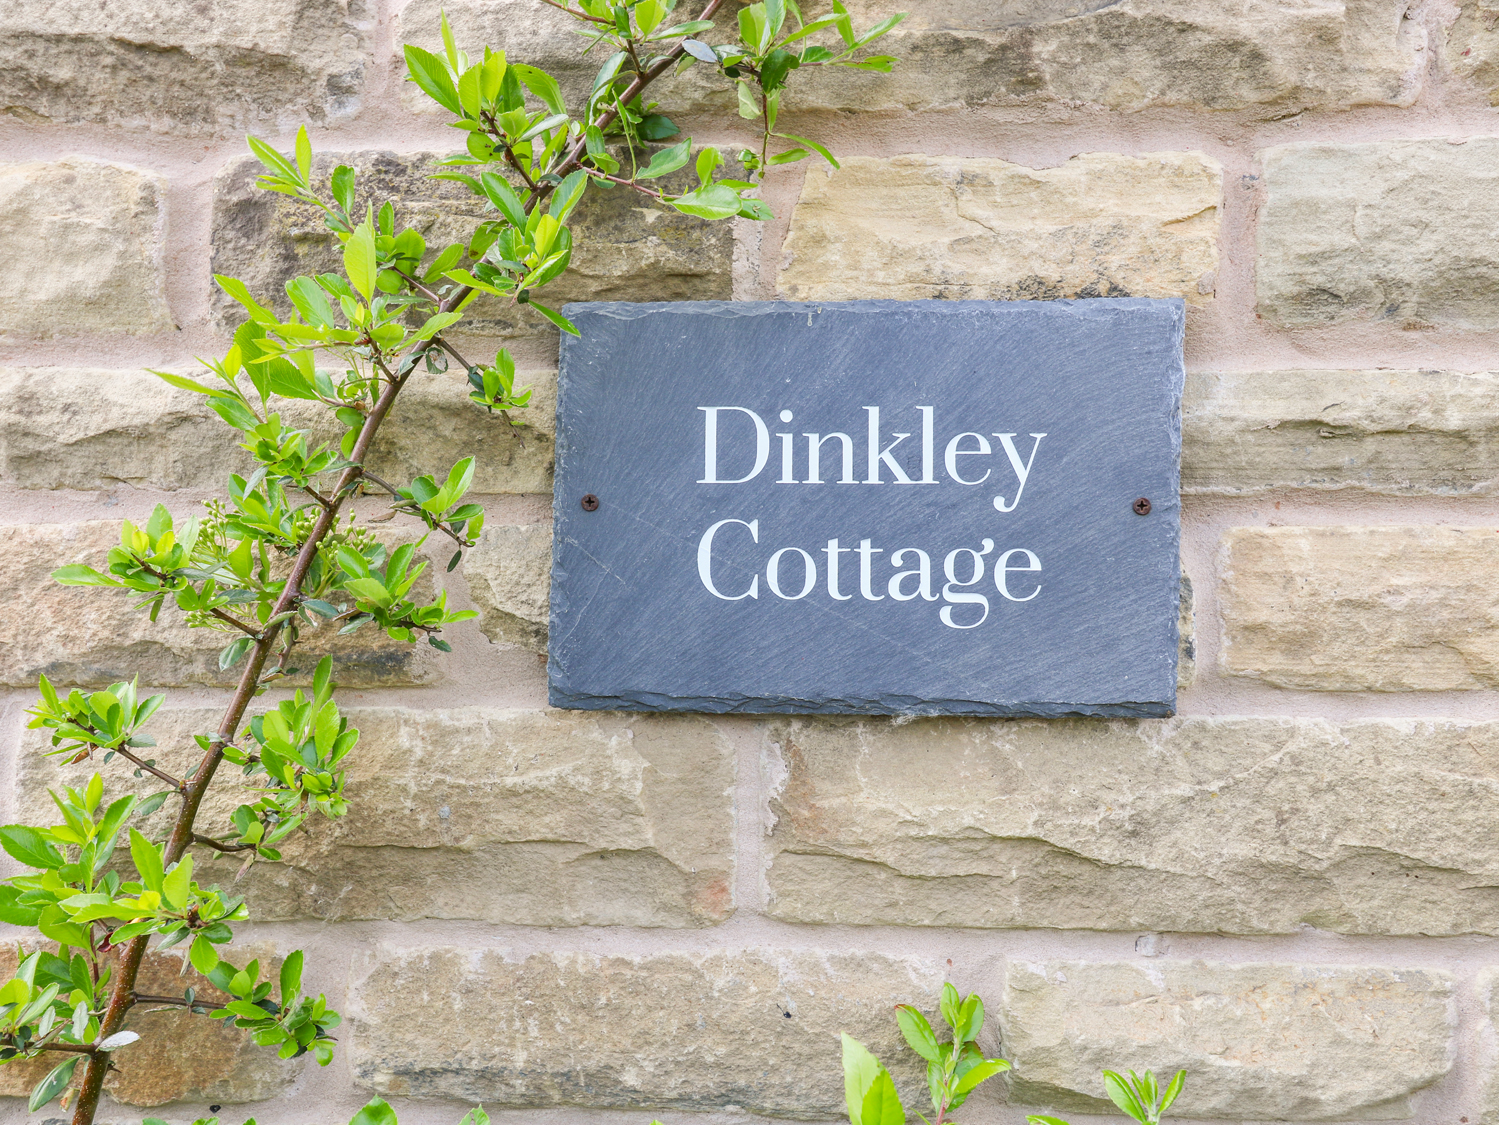 Dinkley Cottage